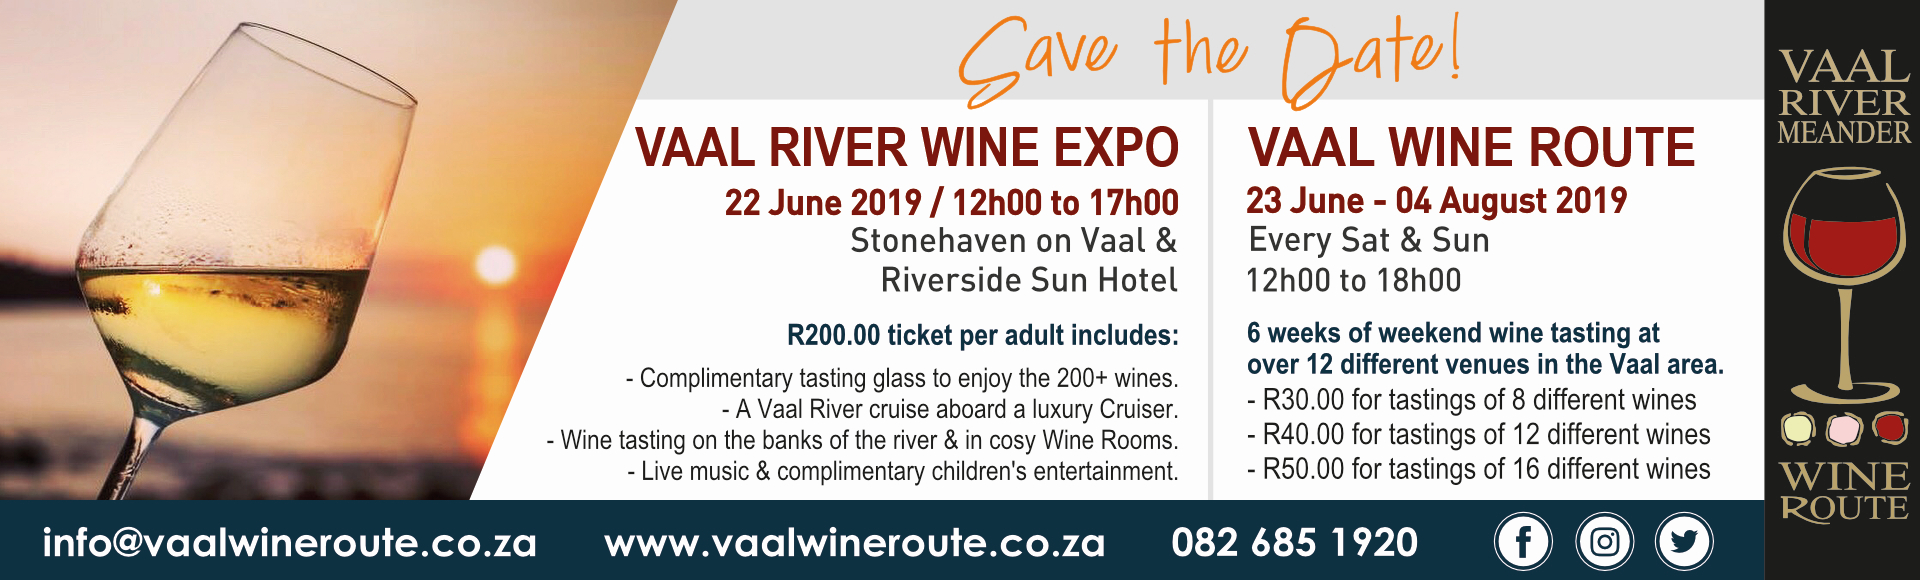 Vaal Wine Route